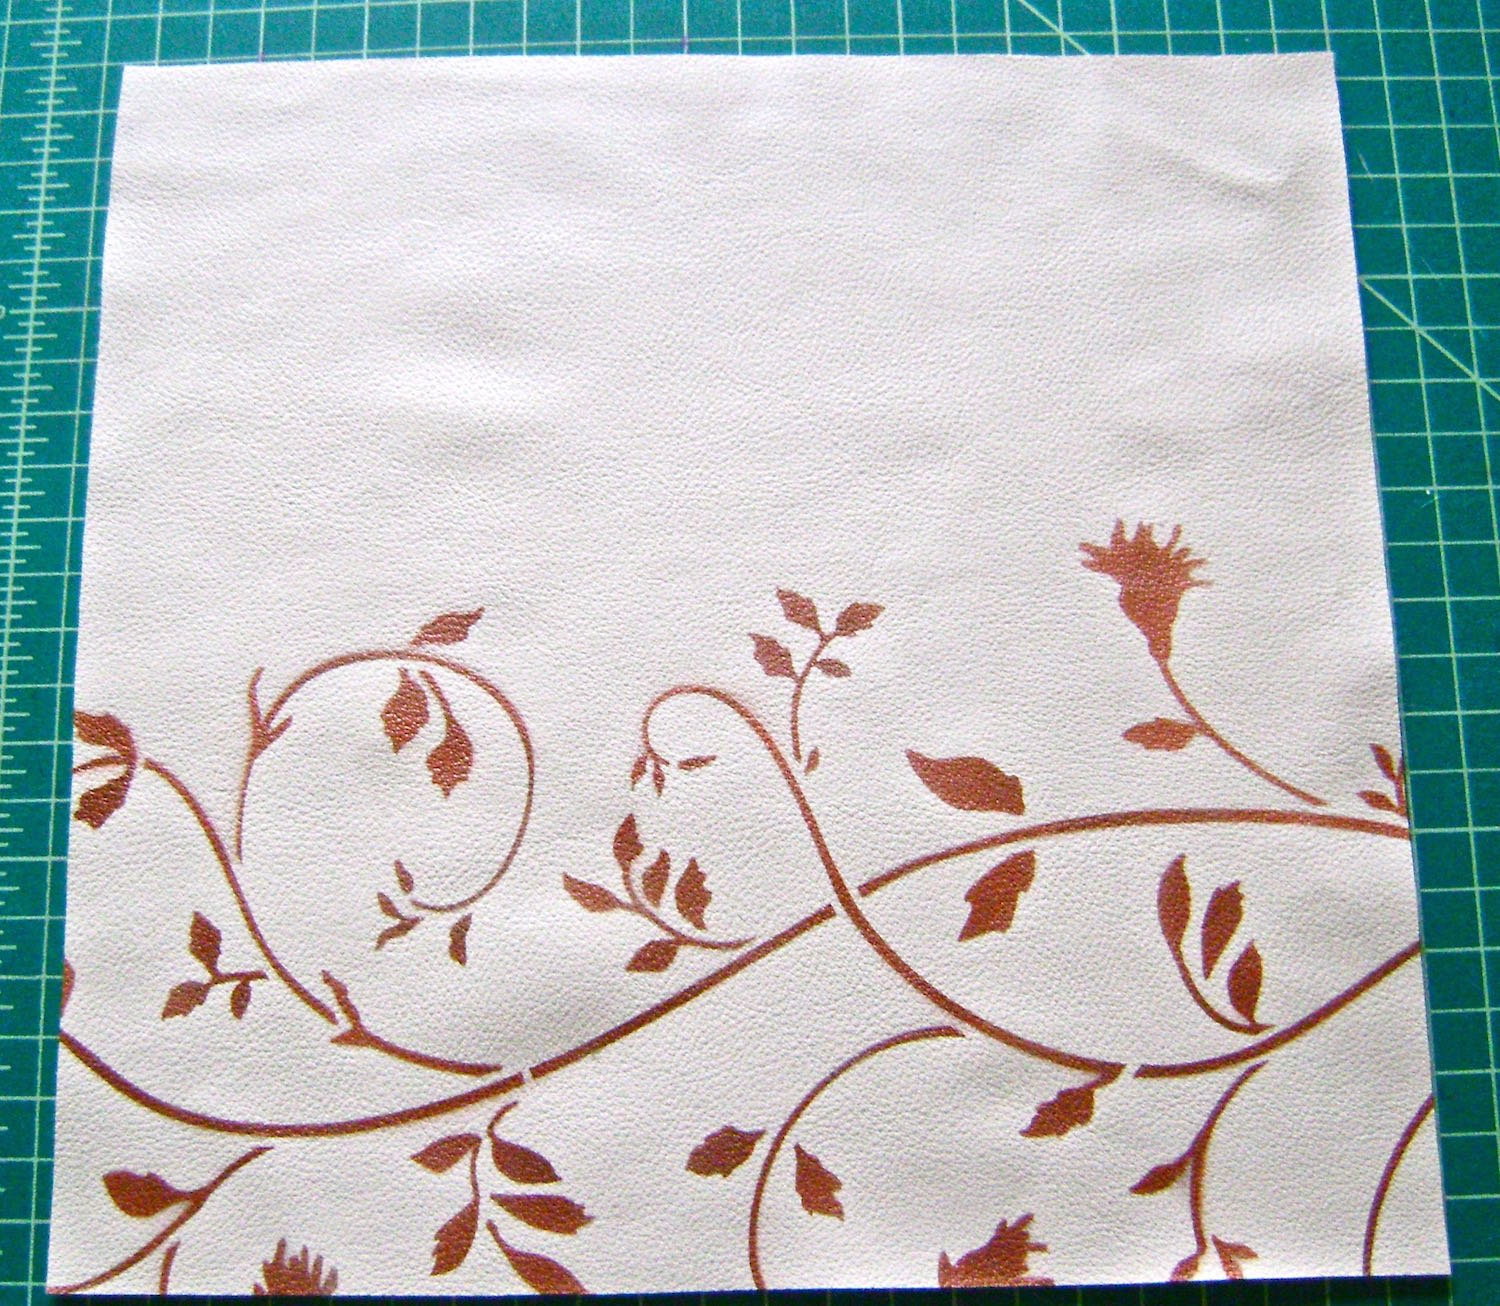 """step 3 - Apply adhesive to the back side of the stencil. Apply it sticky side down to the front vinyl piece so that the floral design begins about 4.75"""" from the top of the piece."""